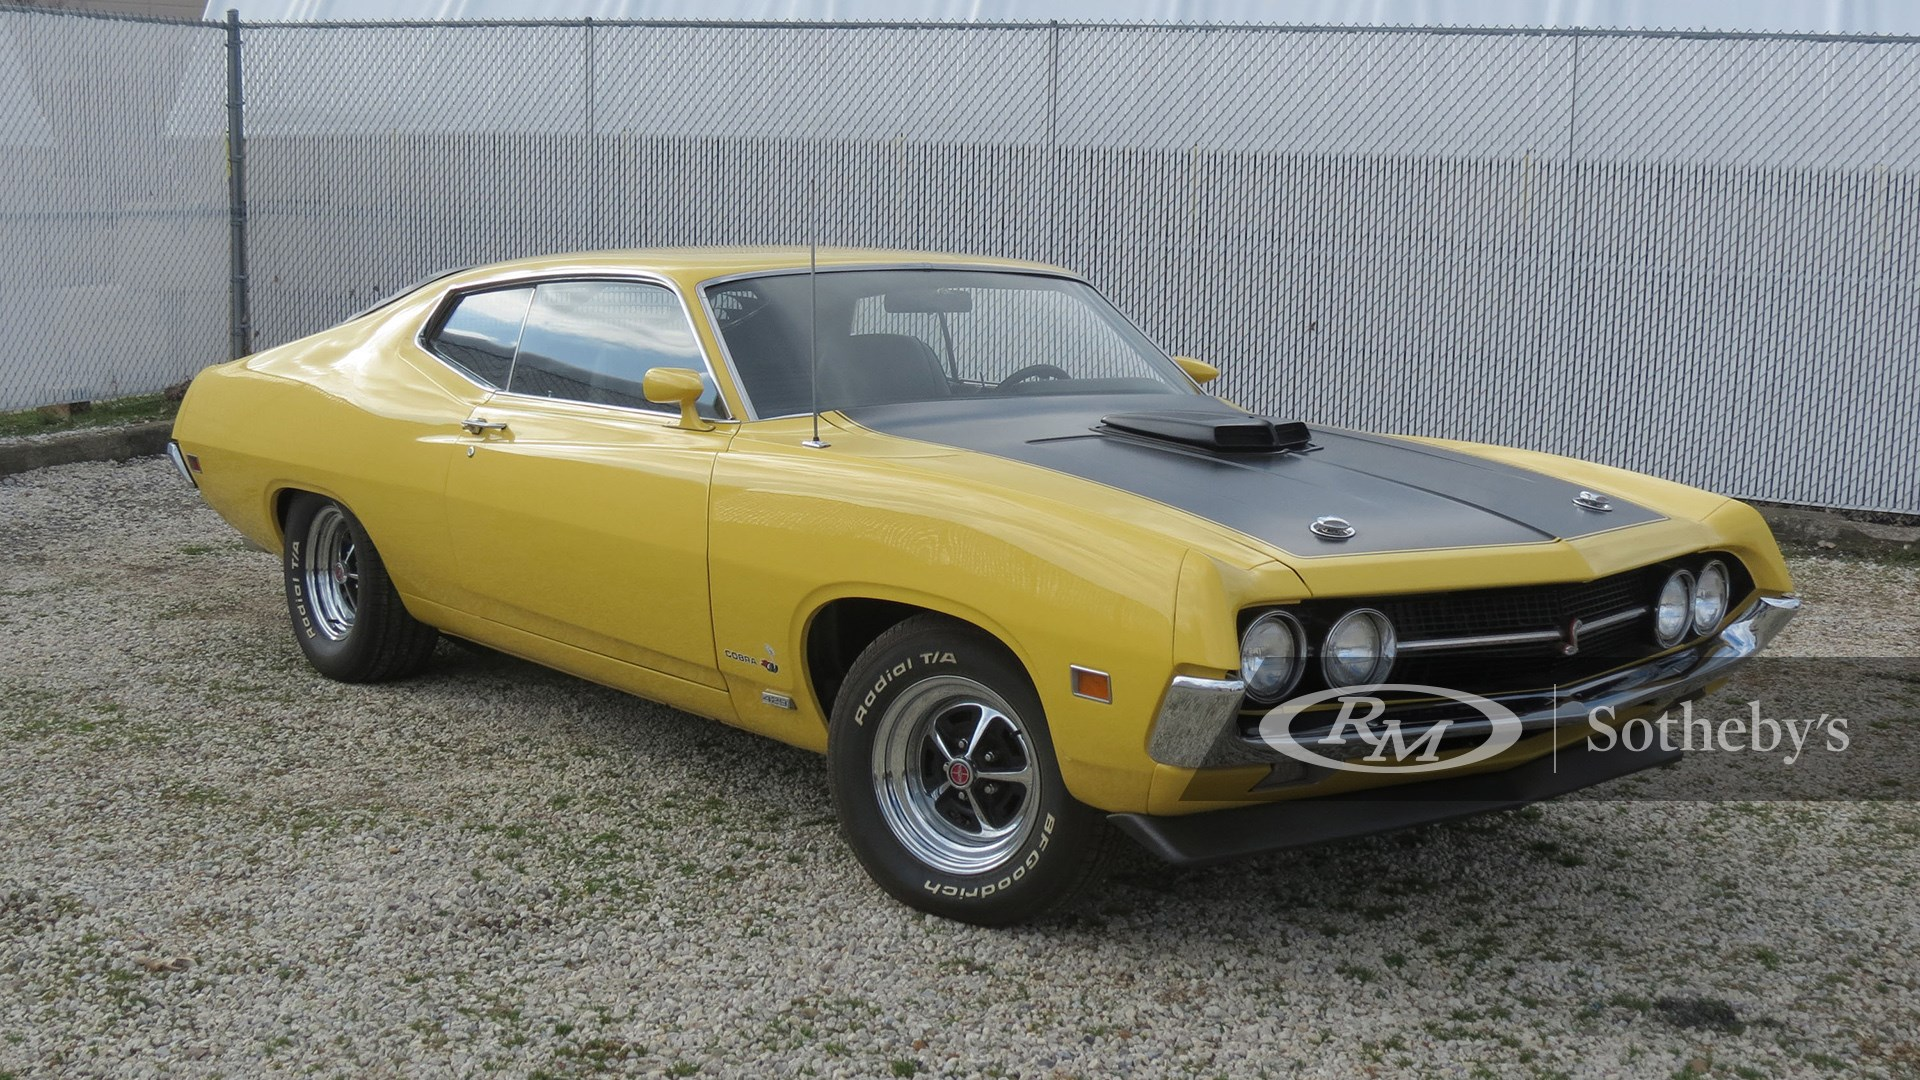 1970 Ford Torino Cobra available at RM Sotheby's Online Only Open Roads April Auction 2021